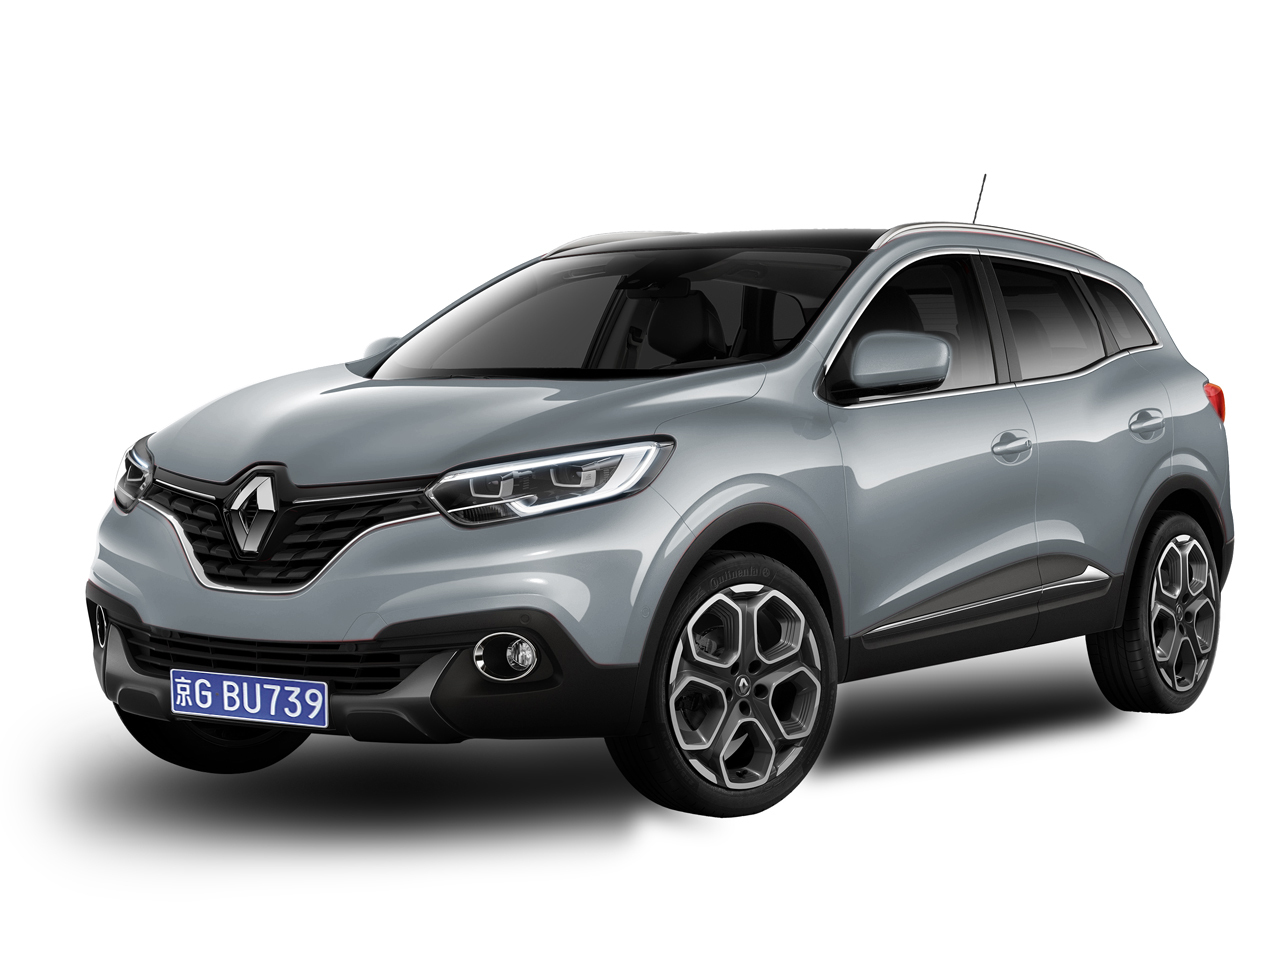 kadjar la premi re renault made in china renault auto evasion forum auto. Black Bedroom Furniture Sets. Home Design Ideas